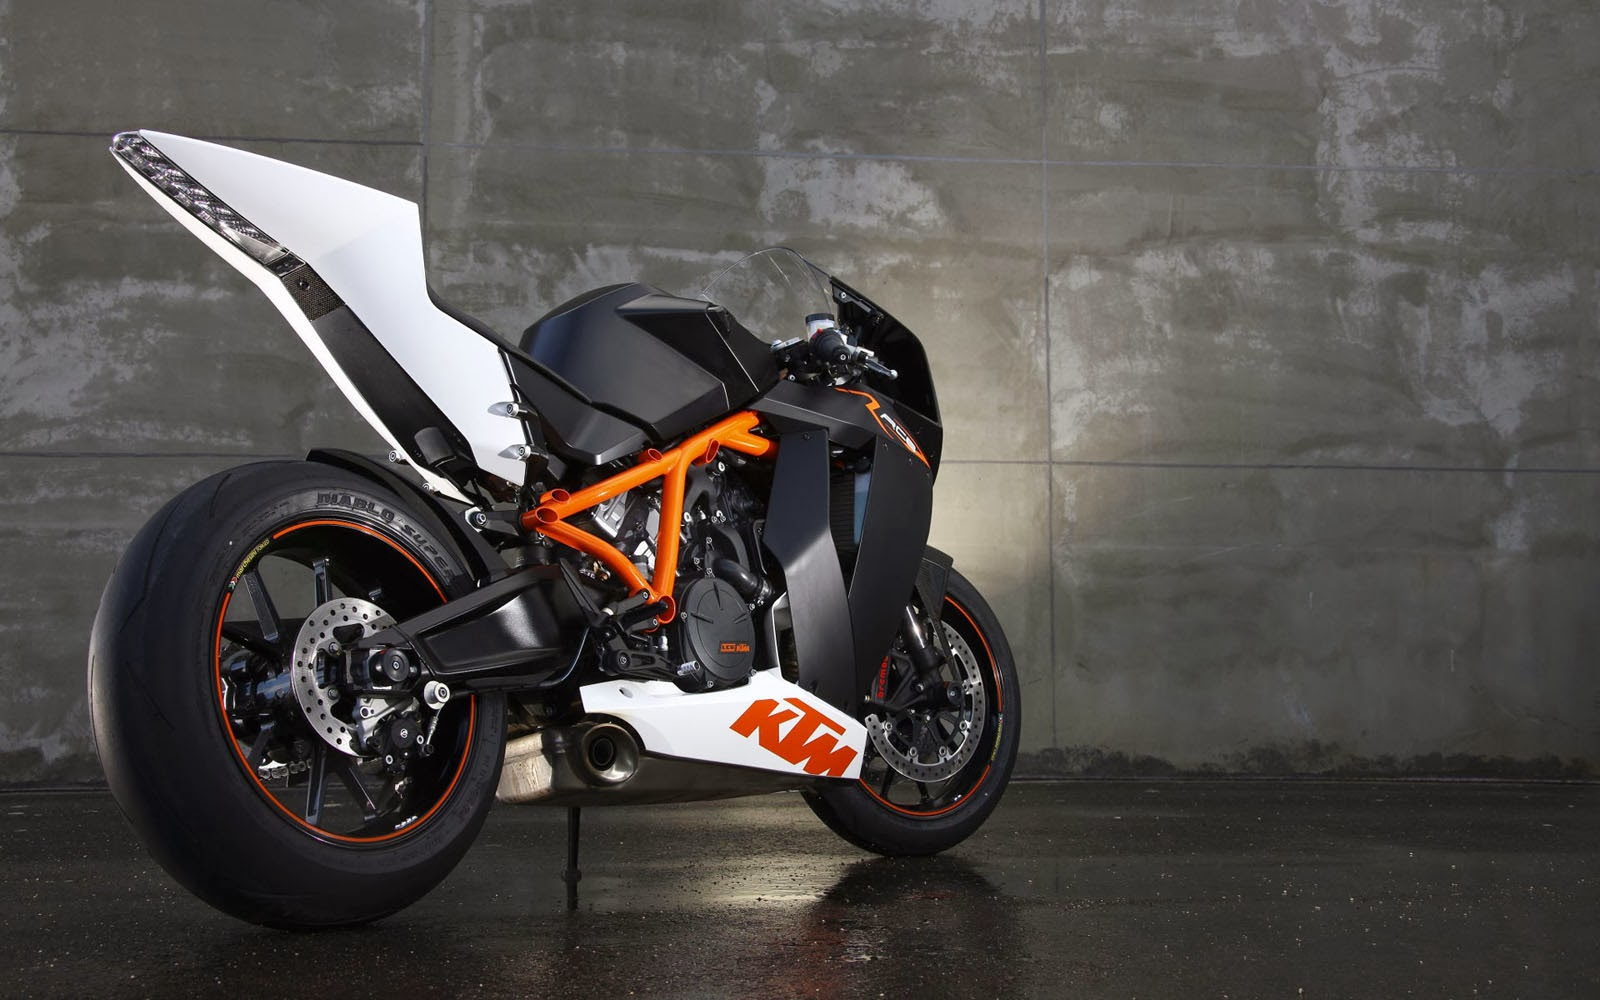 Ktm Duke 200 Philippines >> wallpapers: KTM RC8 Wallpapers